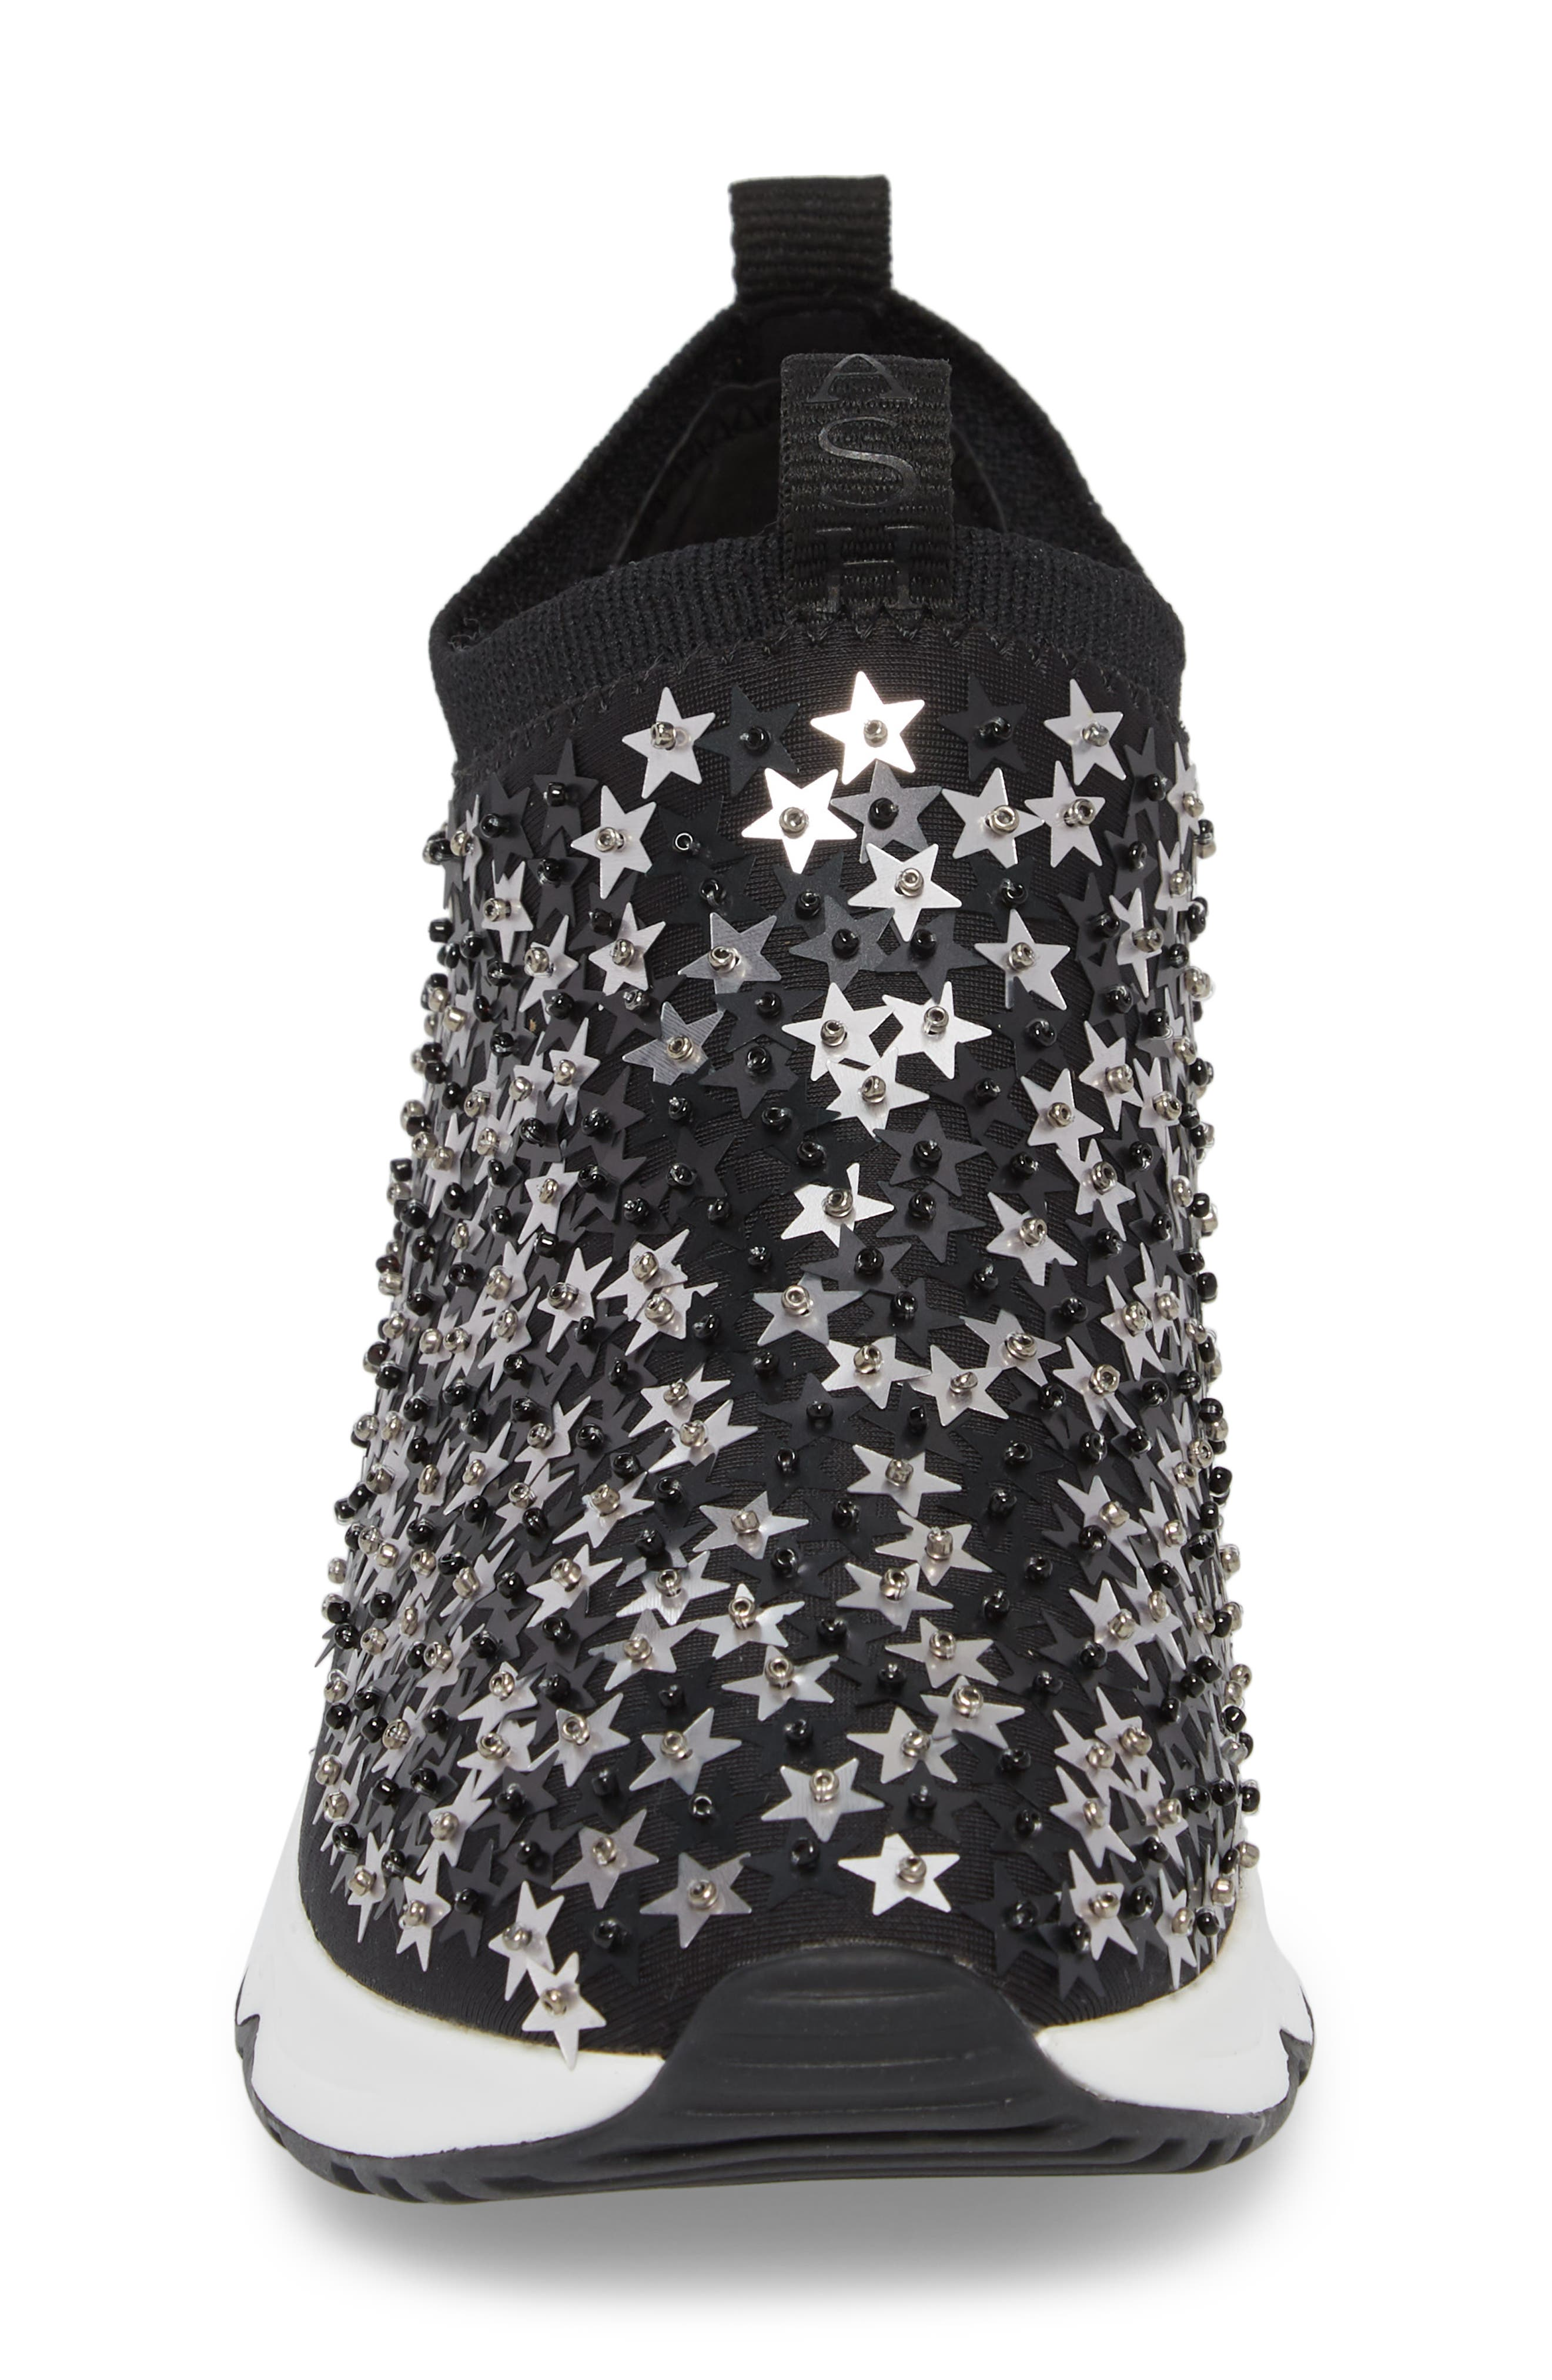 Lighting Star Platform Sock Sneaker,                             Alternate thumbnail 4, color,                             Black/ Silver